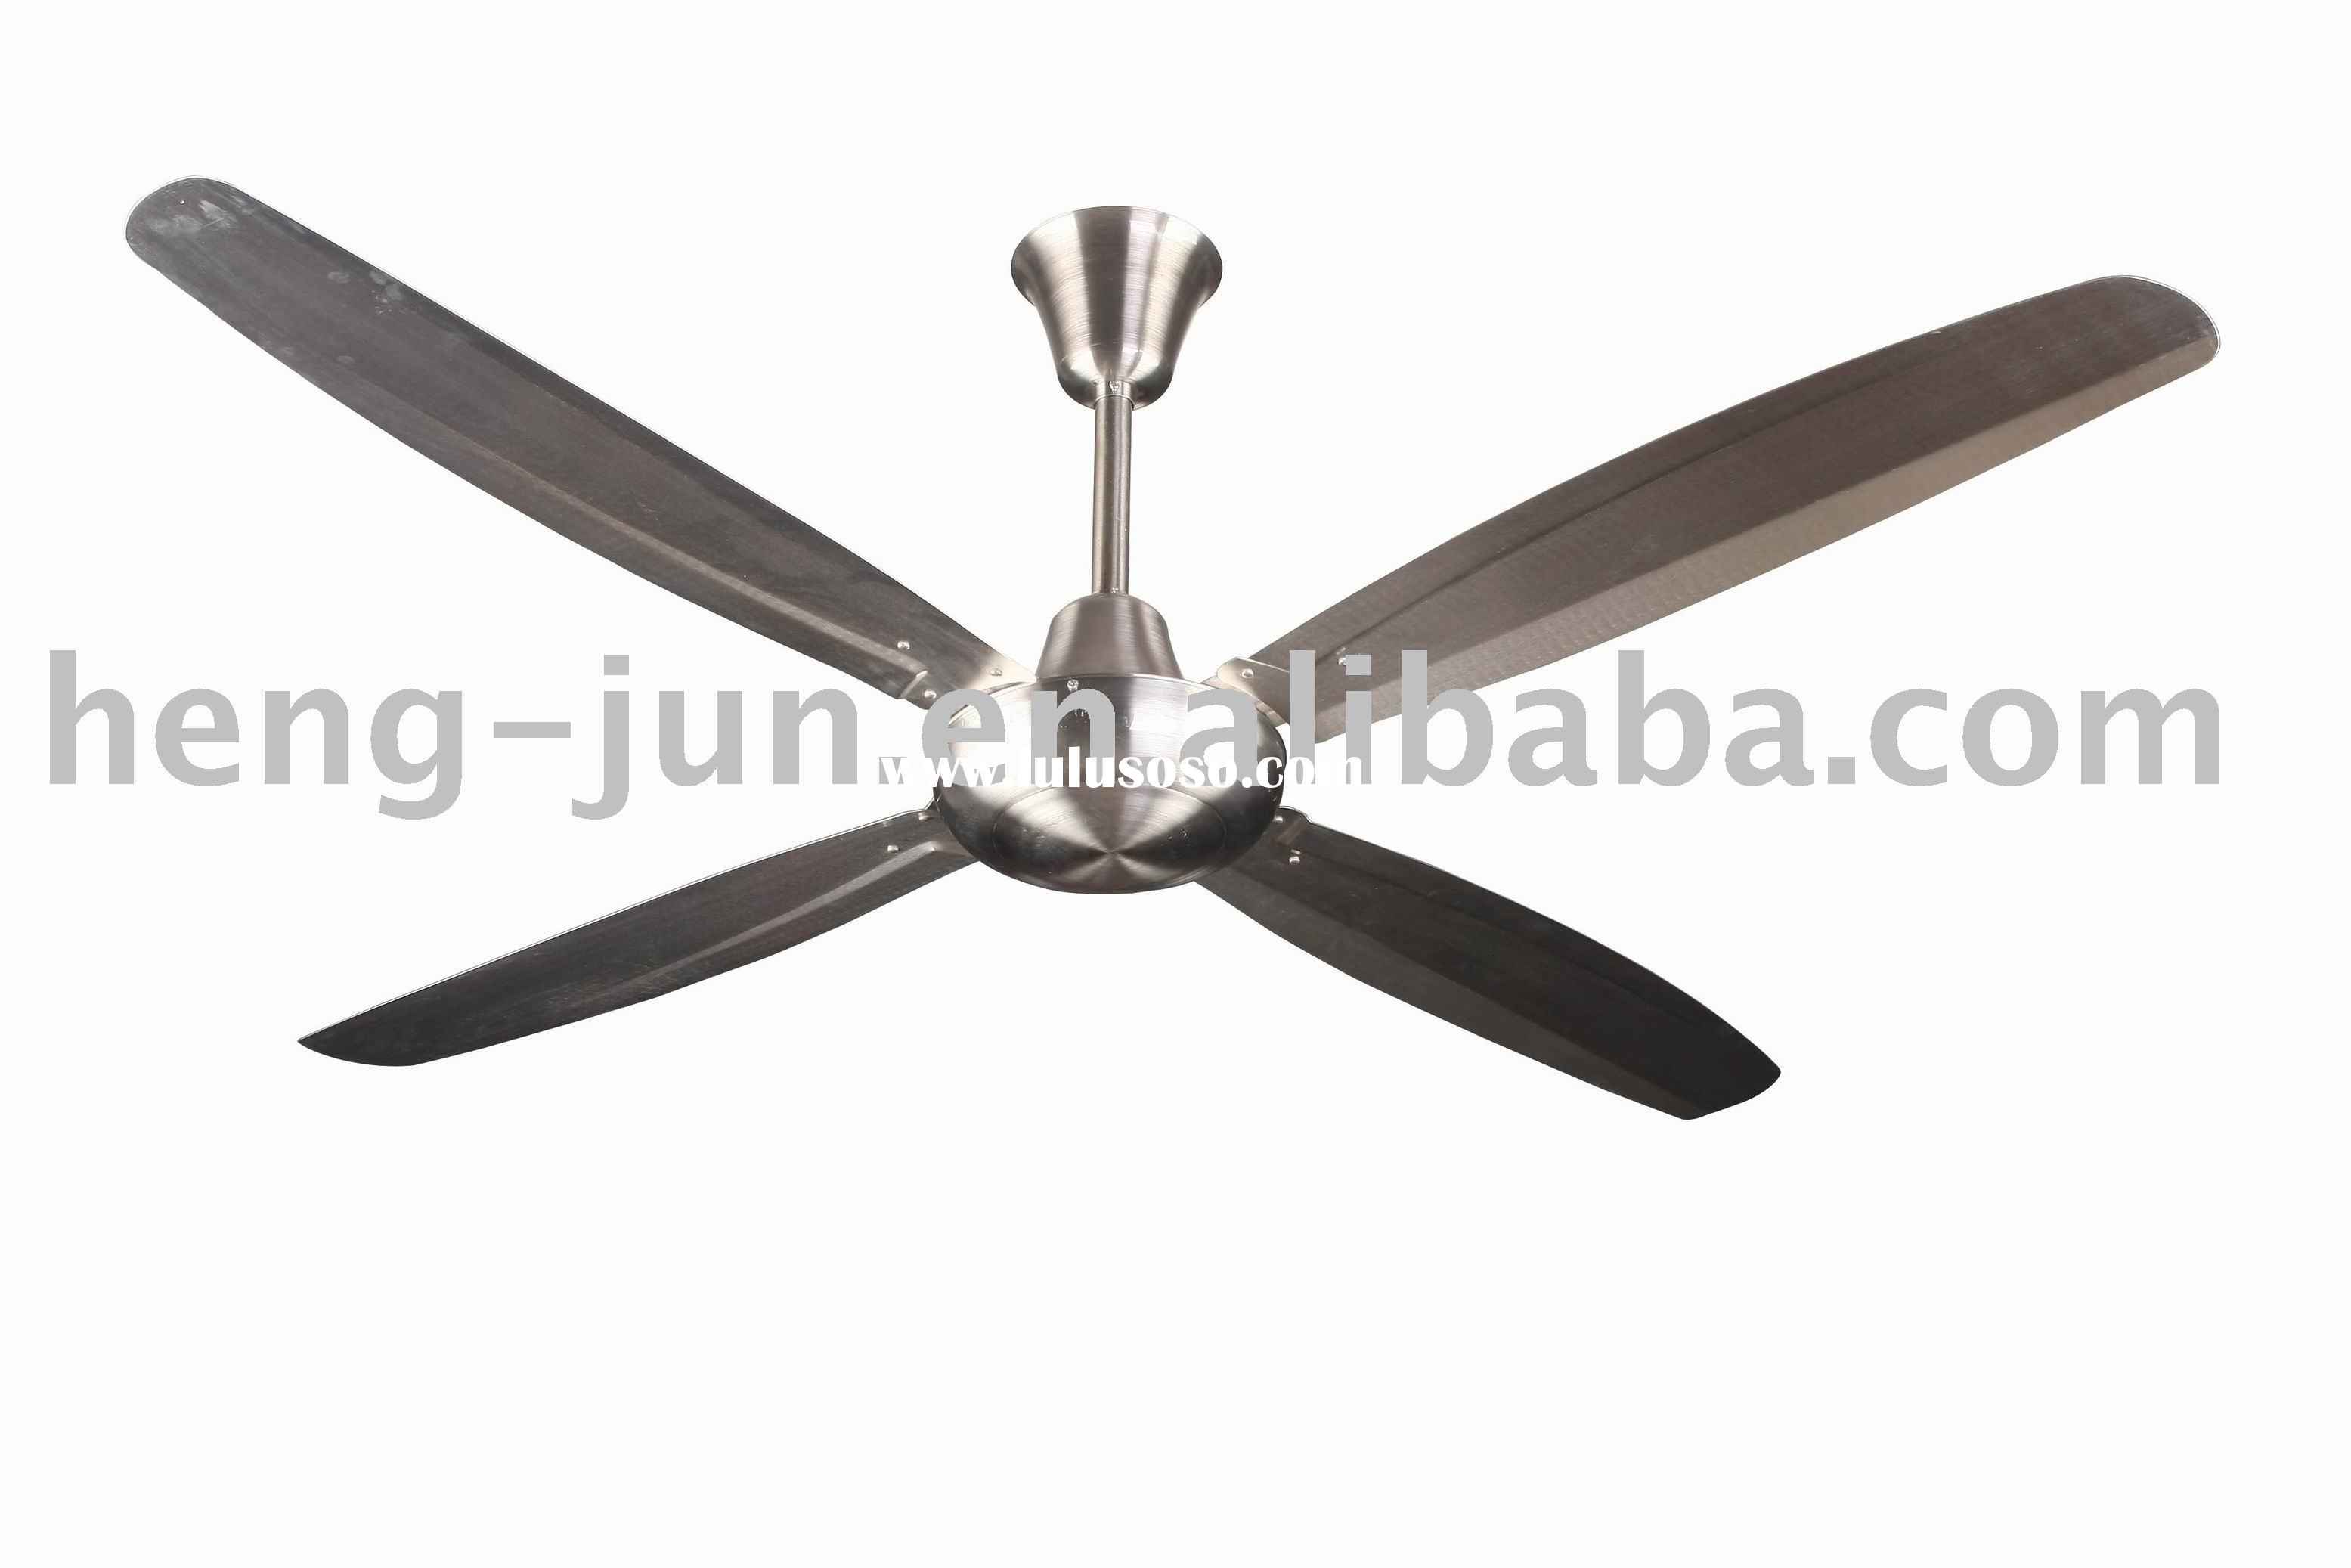 STAINLESS STEEL CEILING FAN Ceiling Systems